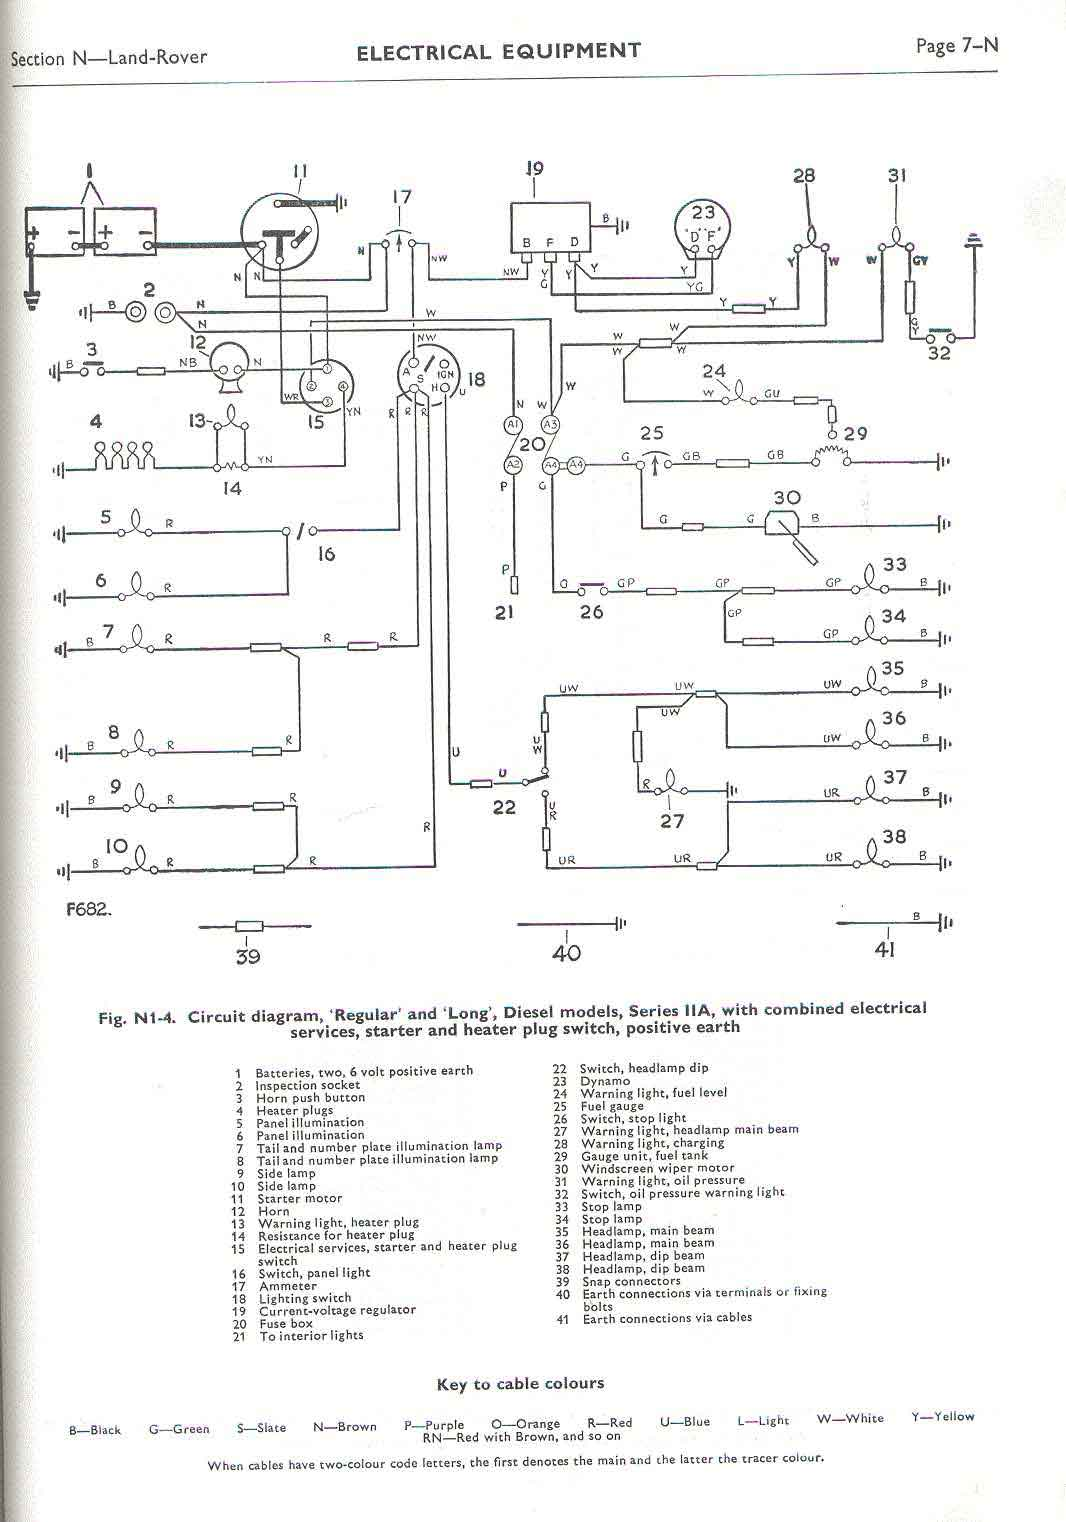 land rover faq repair maintenance series electrical rh lrfaq org land rover wiring diagram for amr 4885 land rover wiring diagram for amr 4885